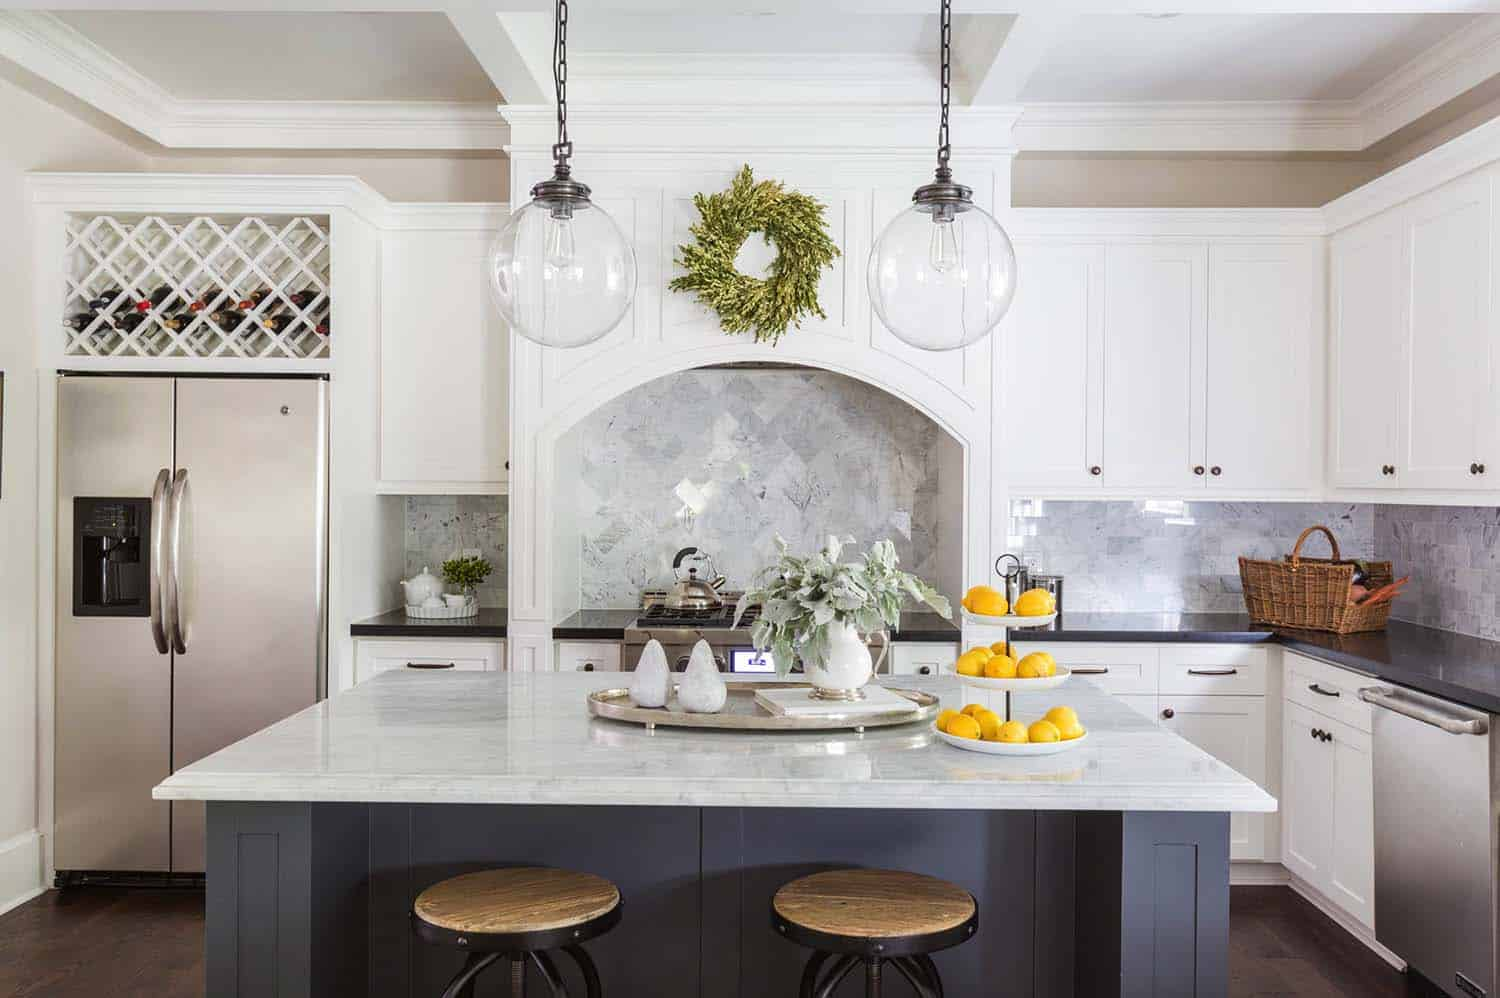 Bungalow de style traditionnel-Marie Flanigan Interiors-09-1 Kindesign